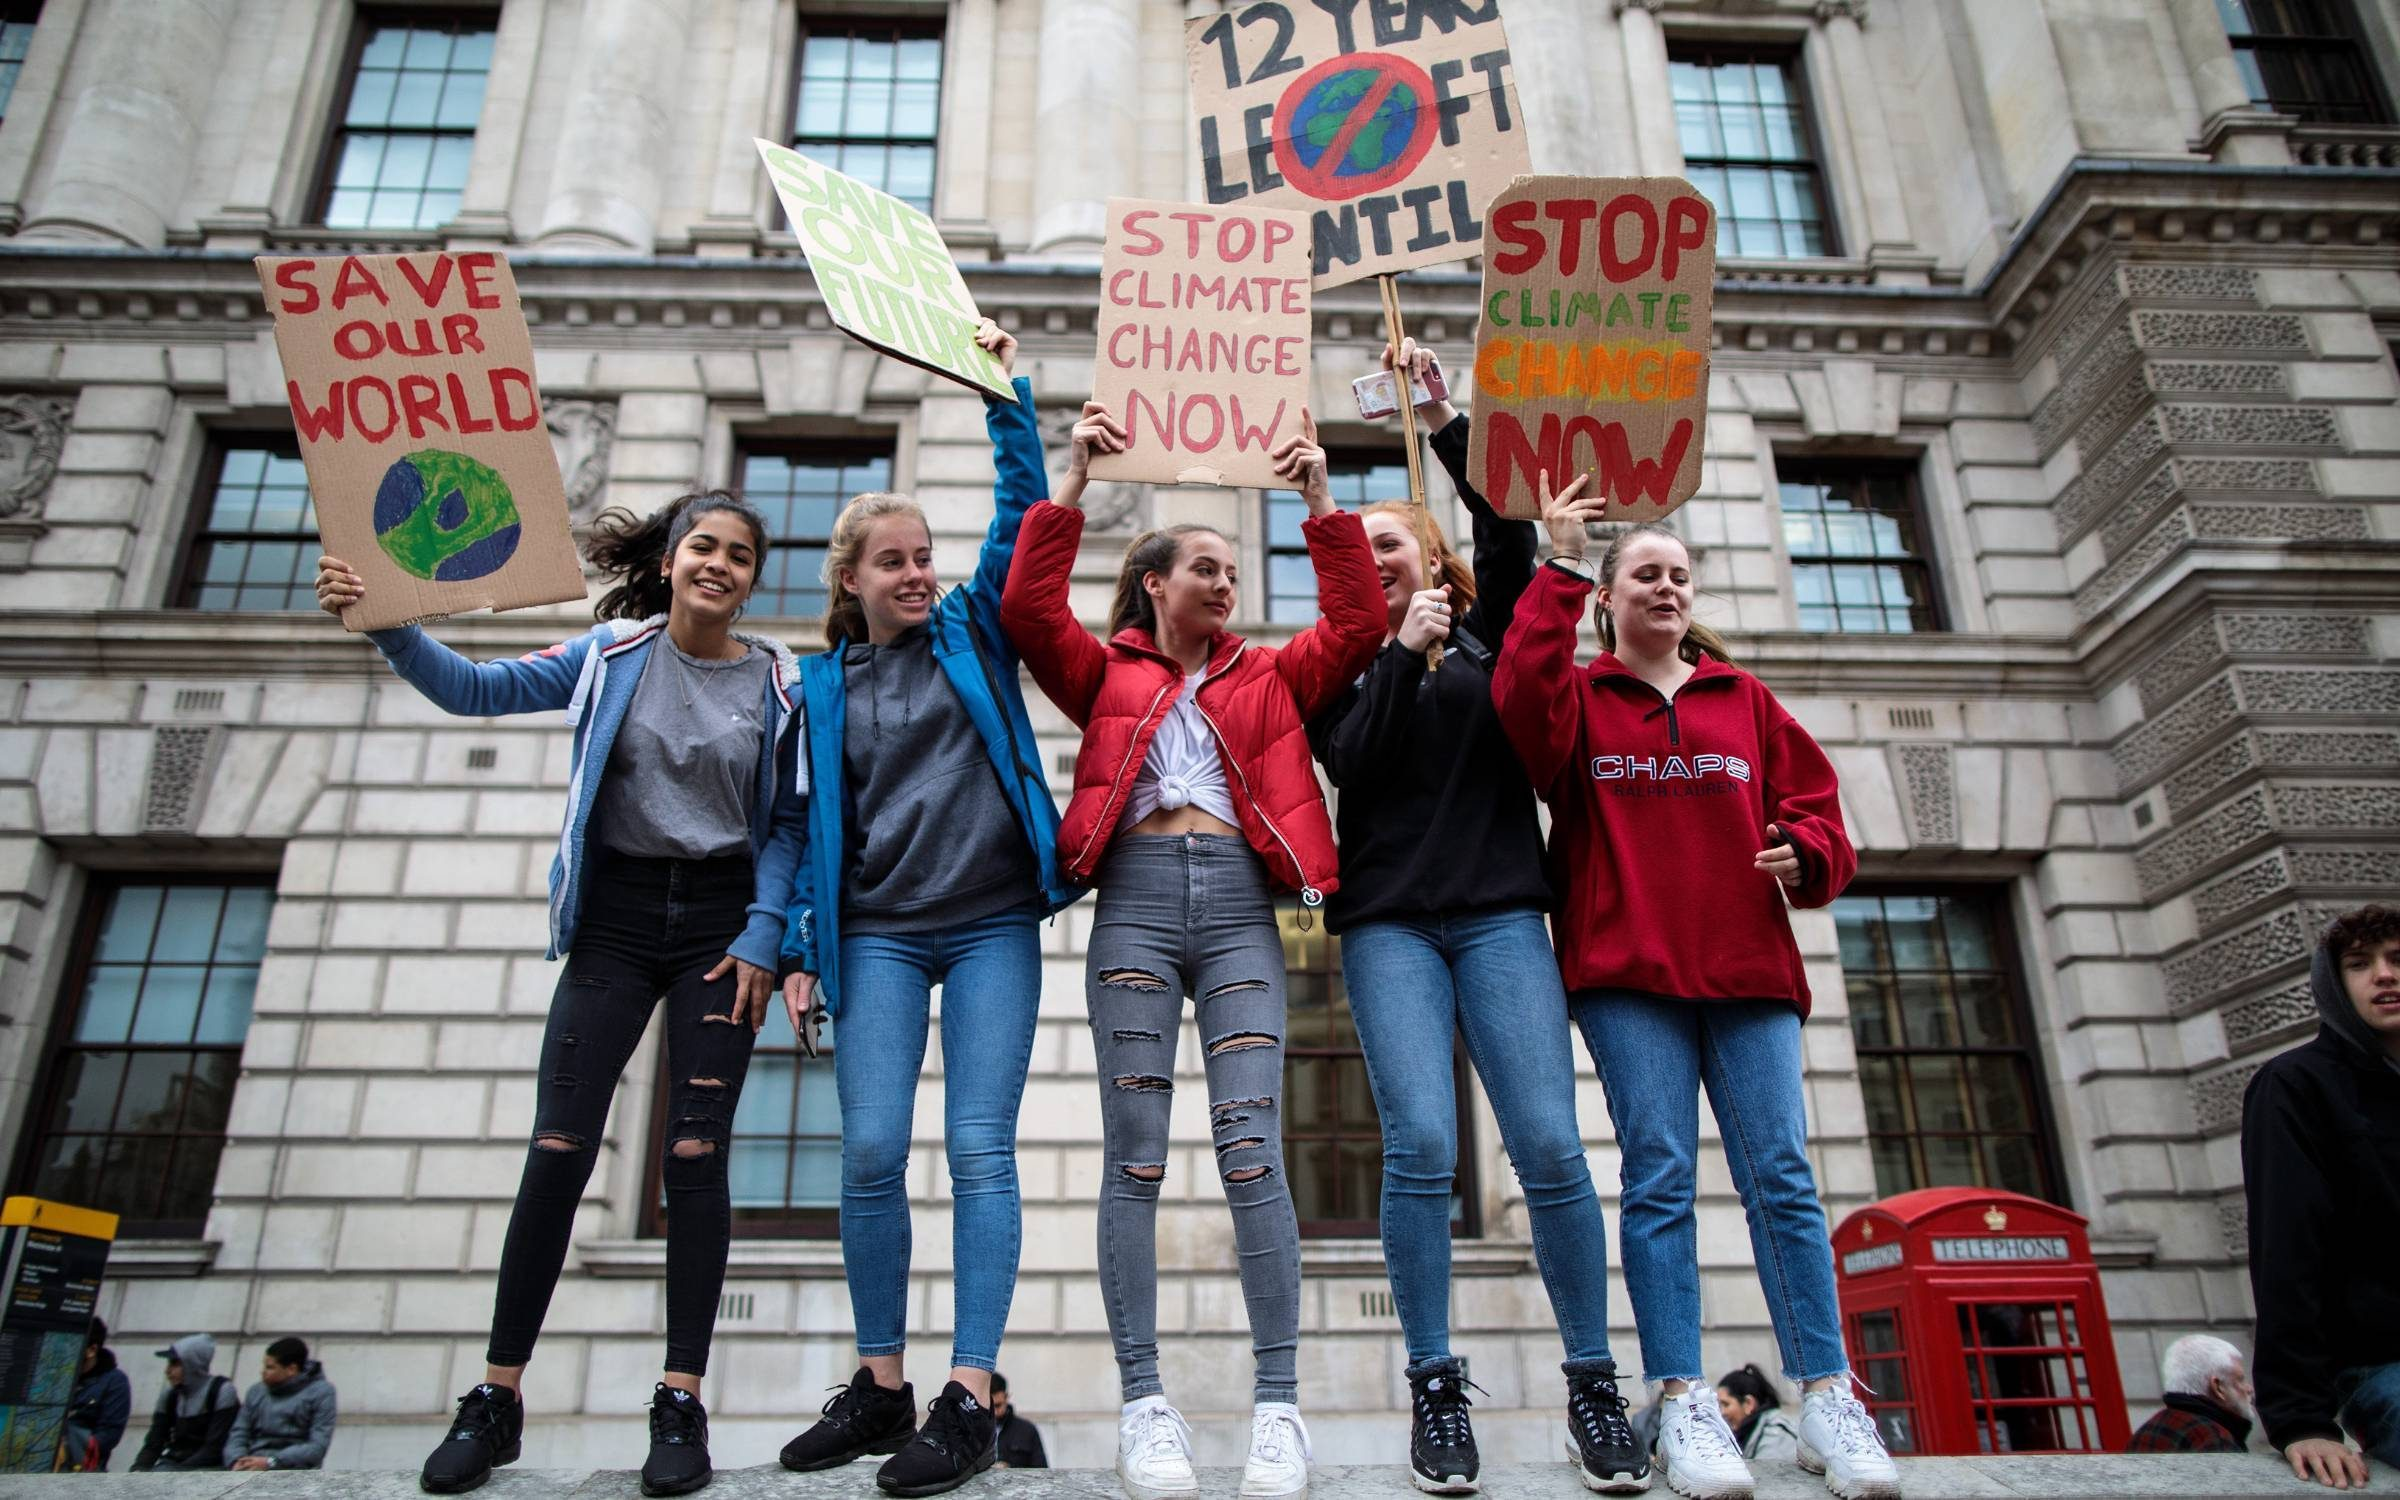 School children protest at a climate rally. Credit: Getty Images.